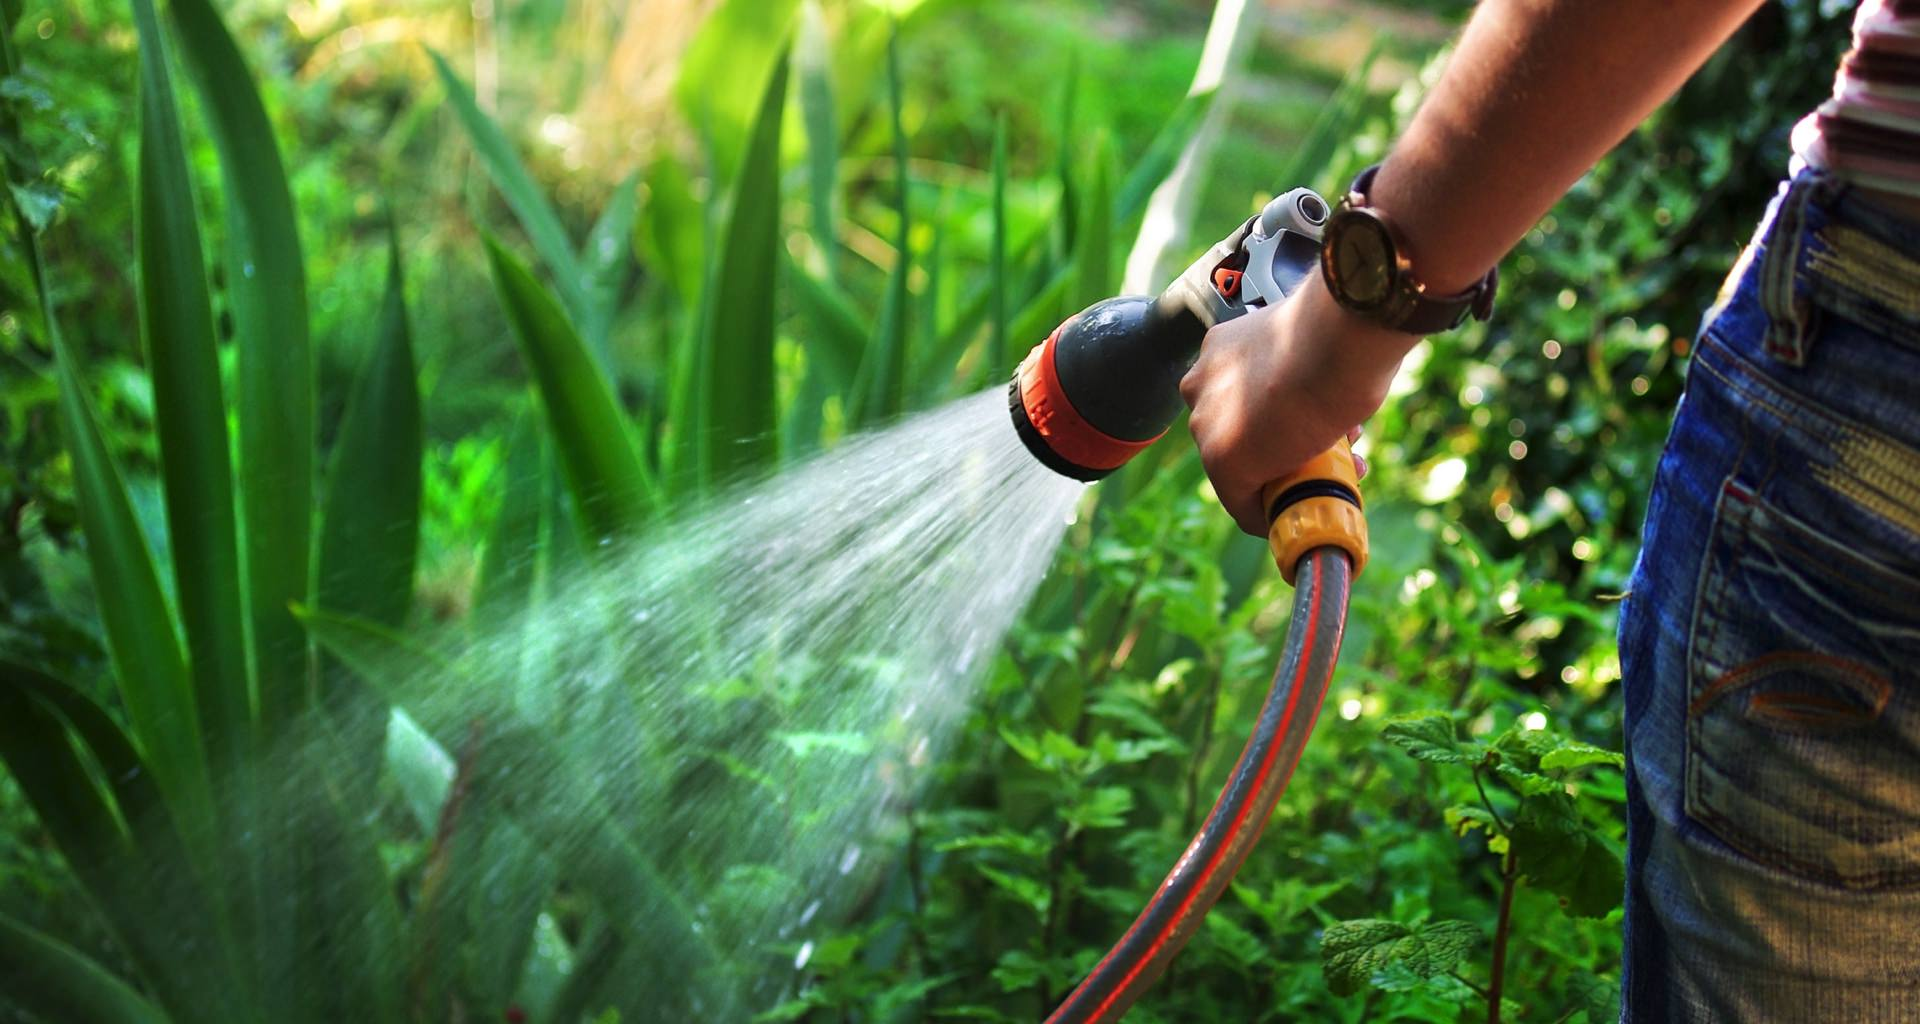 Watering Plants With Hose Pipe